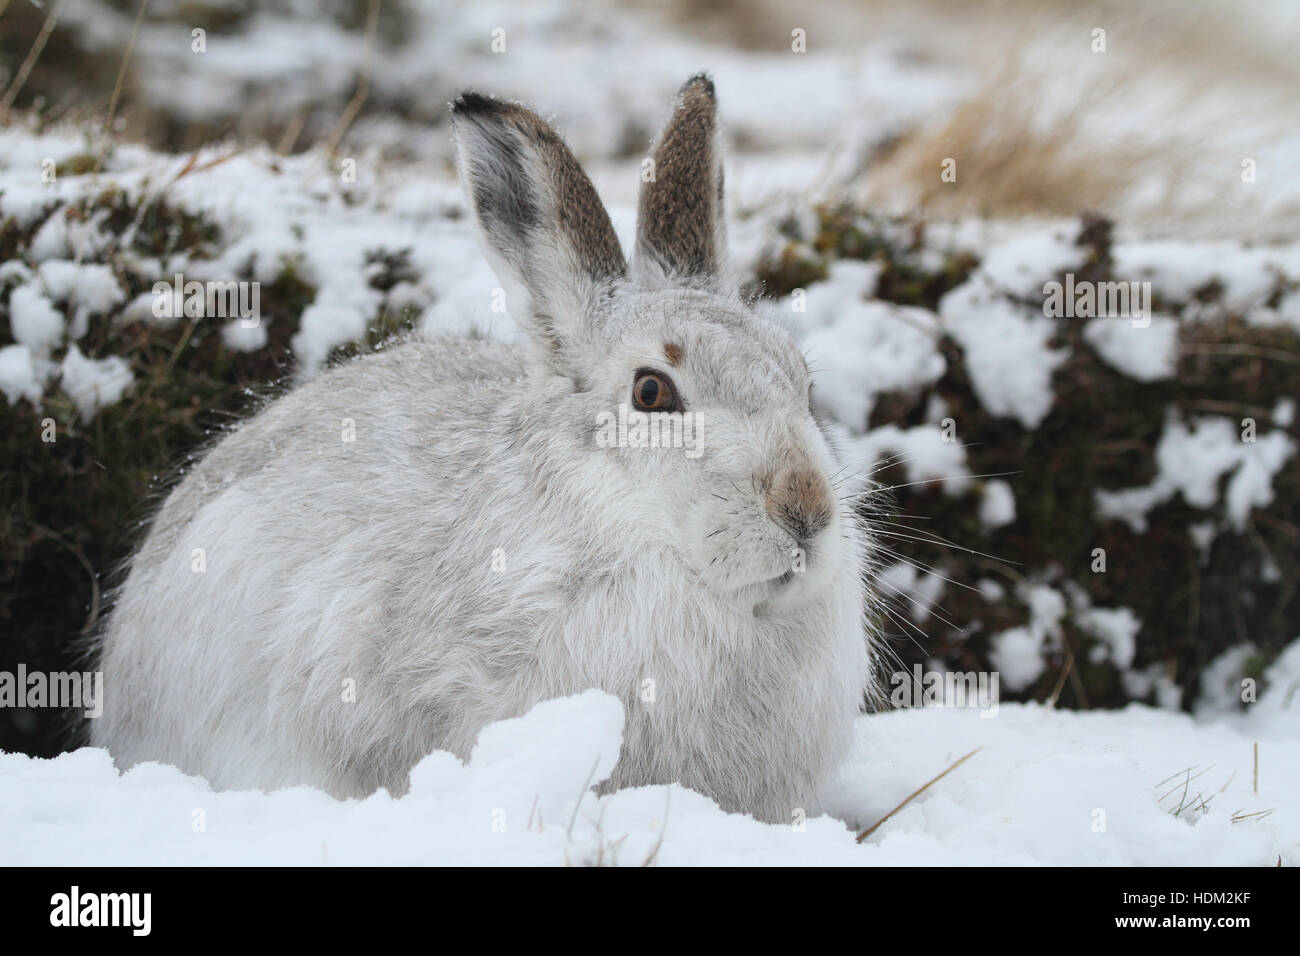 A Mountain Hare (Lepus timidus ) in its winter white coat , in a snow blizzard high in the Scottish mountains. - Stock Image